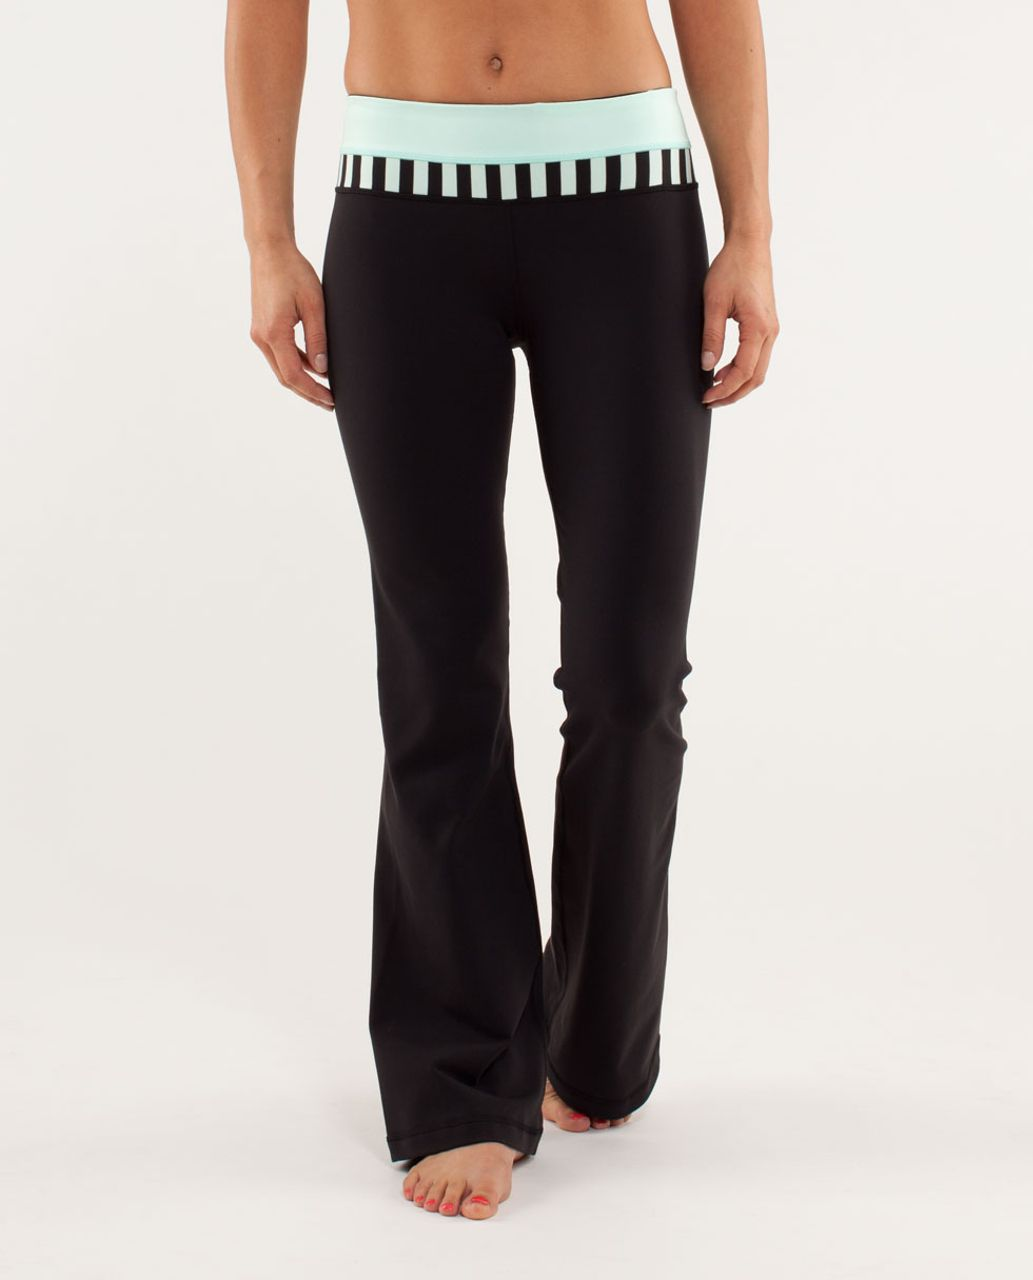 Lululemon Groove Pant *New (Tall) - Black / Mint Moment / Sea Stripe Mint Moment Black